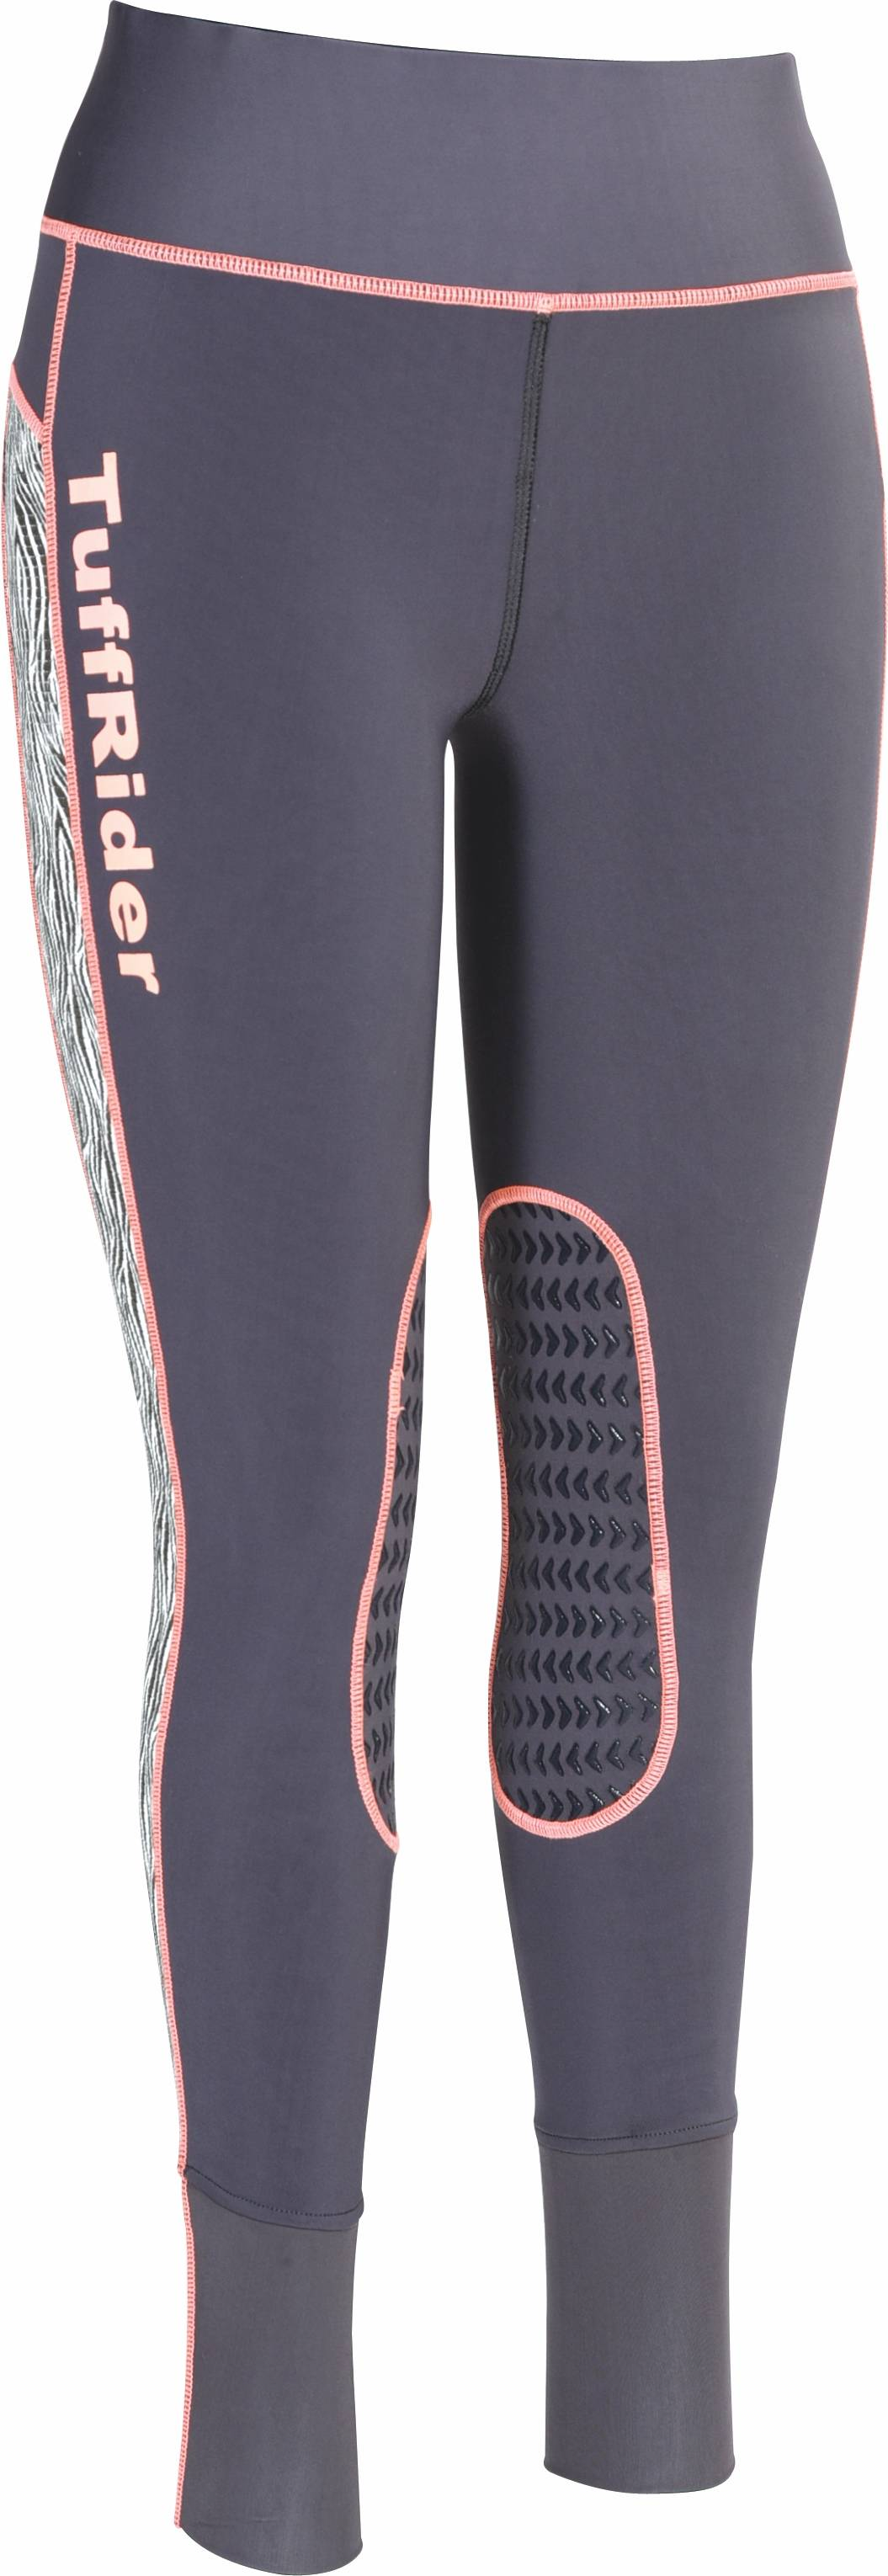 Tuffrider Zebra Marathon Tights - Ladies